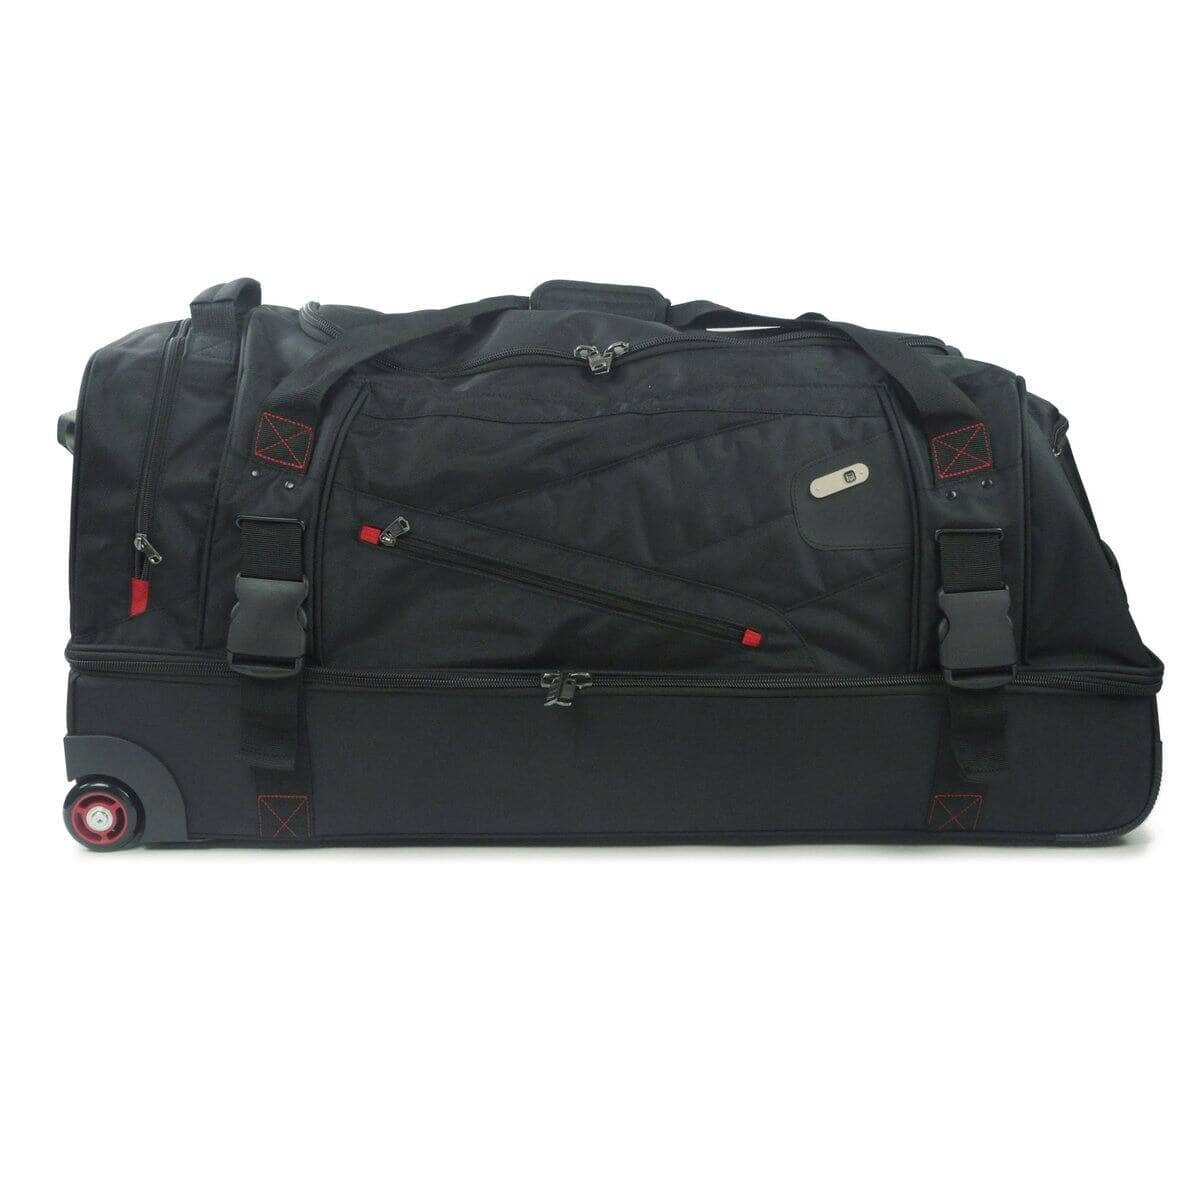 Ful Tour Manager 36in Rolling Duffel Bag, Black $89.94 Shipped